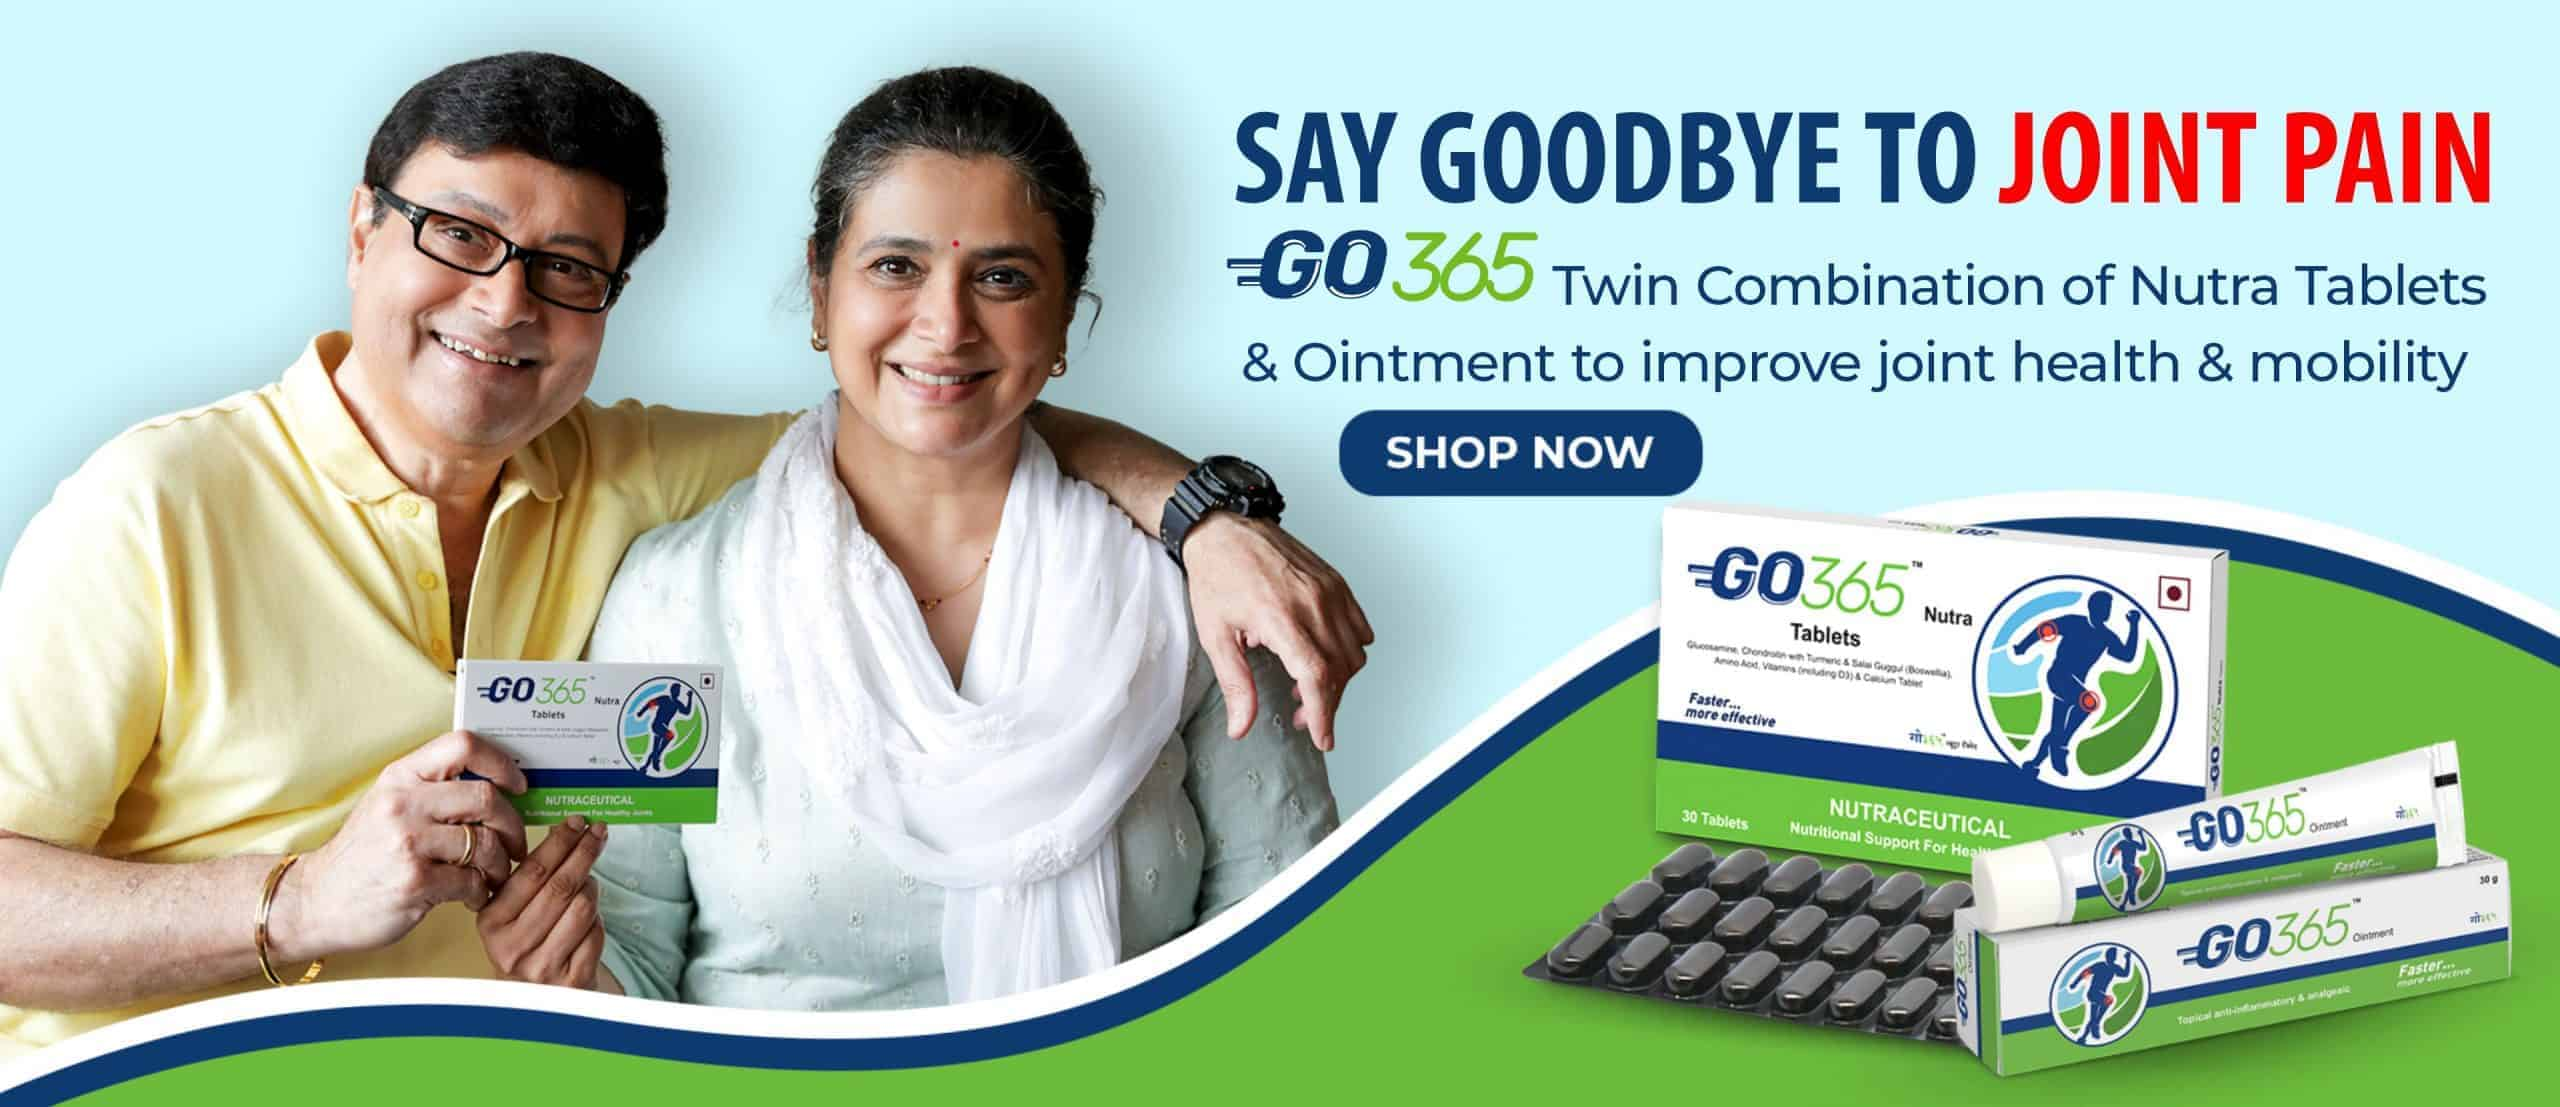 Go365 Nutra Tablets